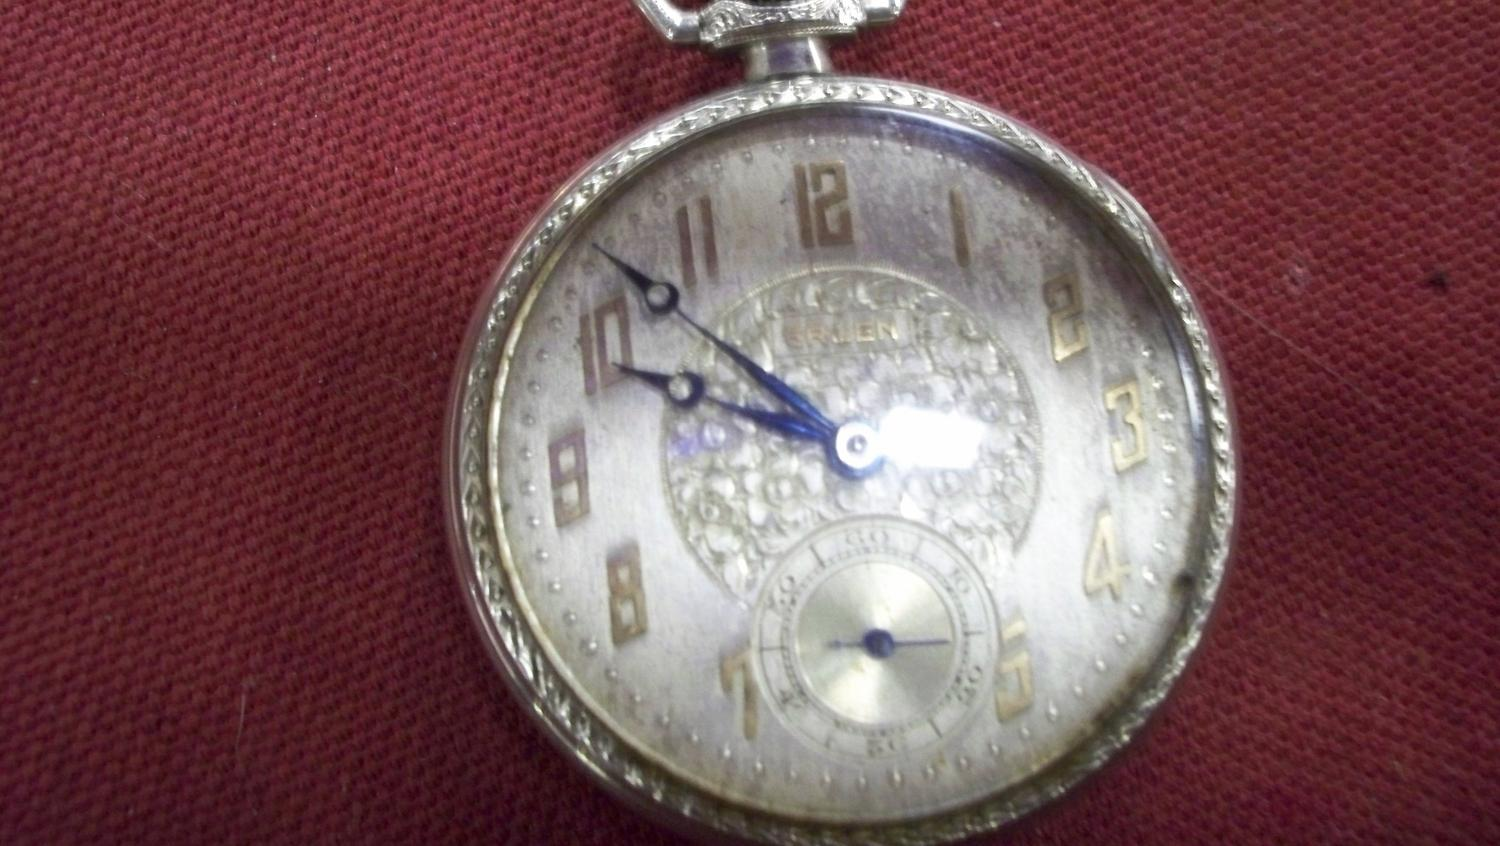 dating a gruen pocket watch Watch list purchase history  dating a watch by serial number question - hamilton options  while production dates and info for hamilton pocket watches is .